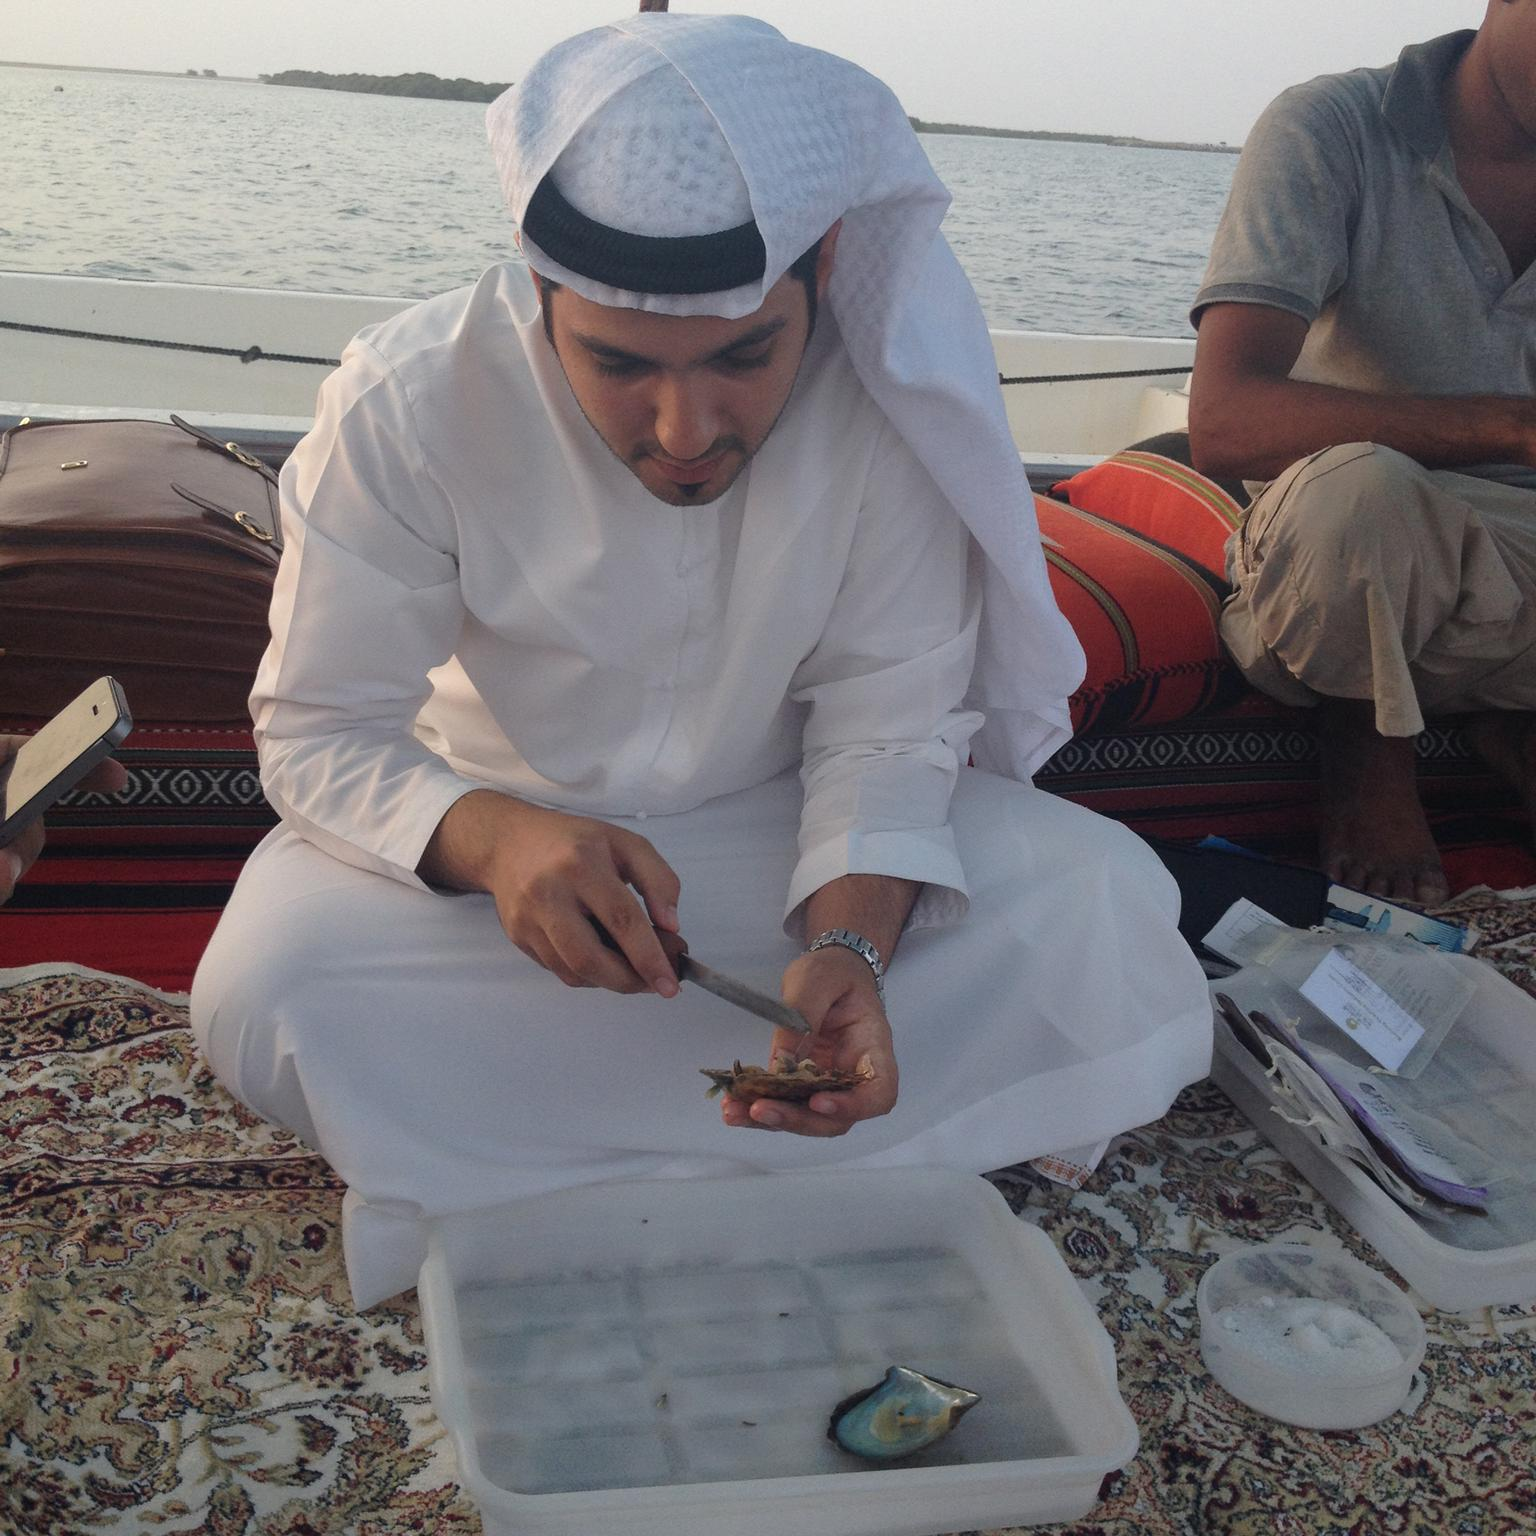 Arabian cultured pearl farming